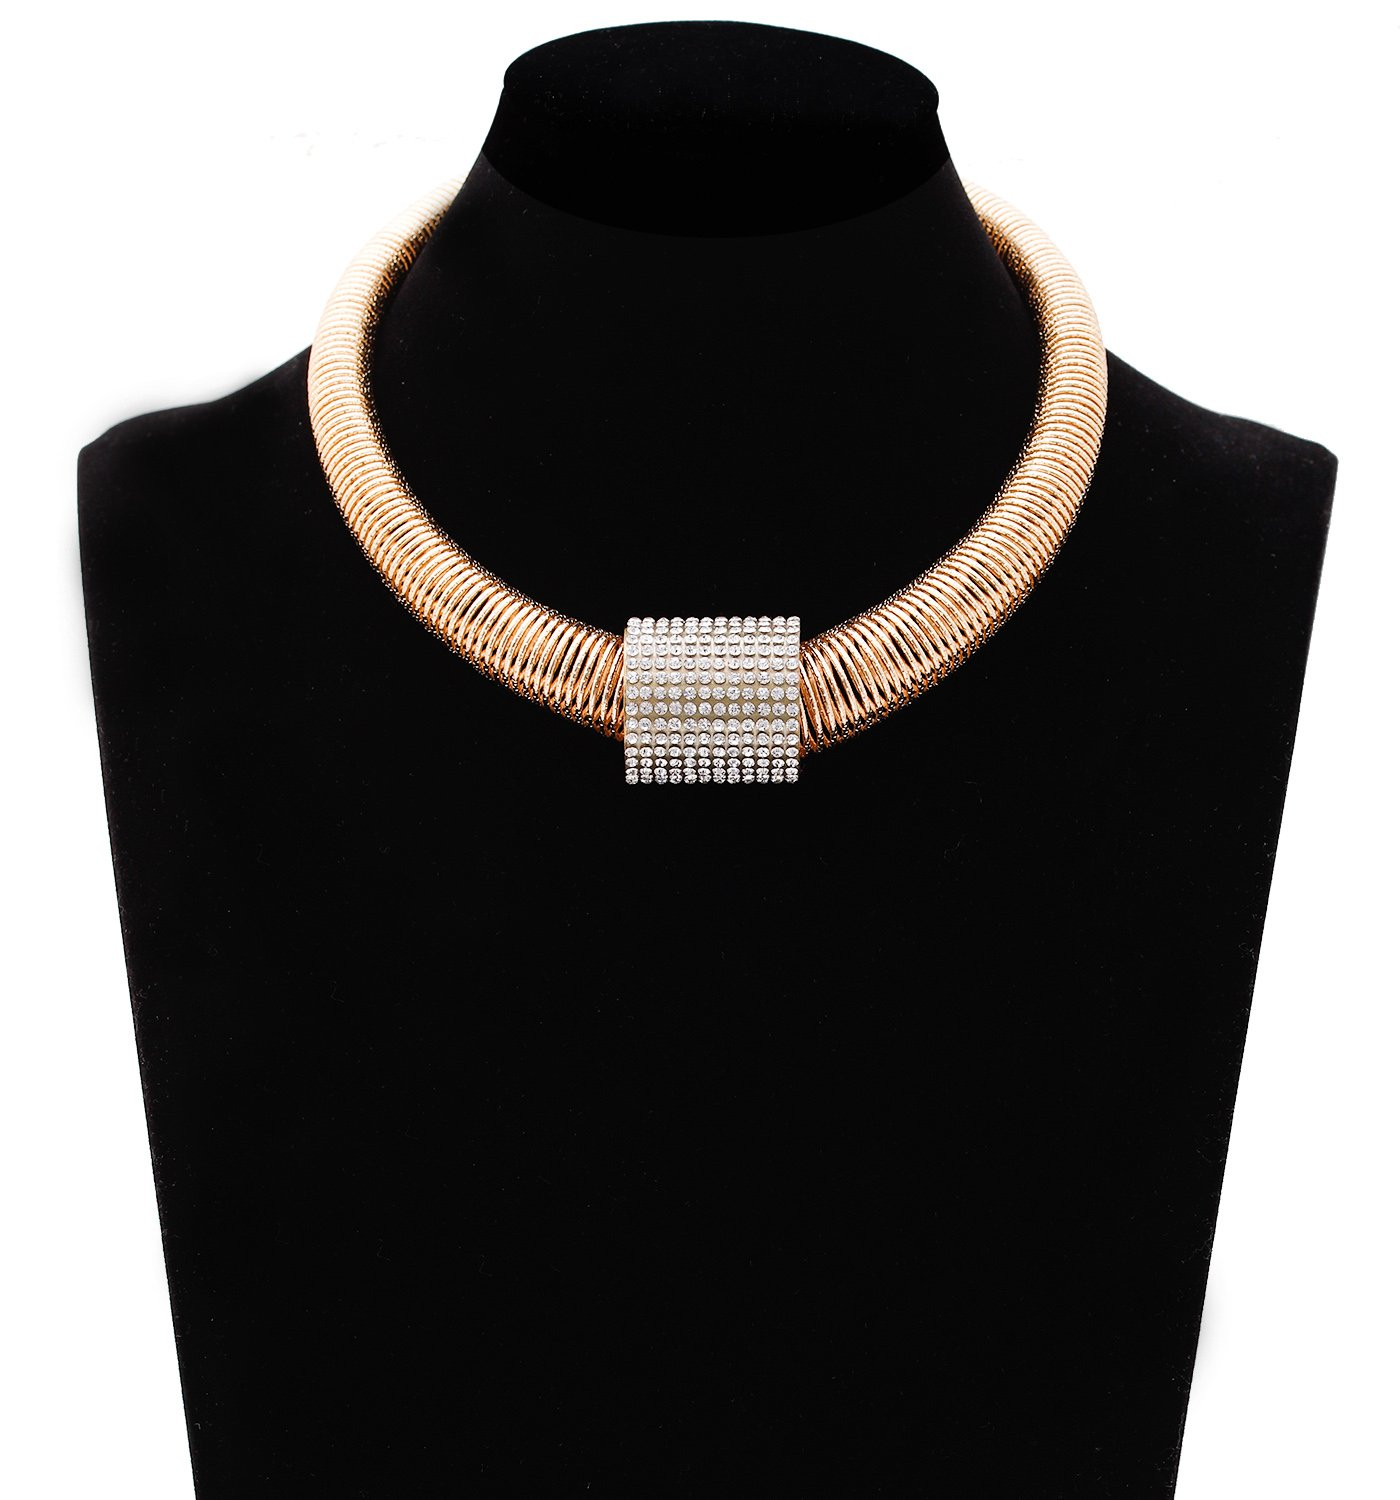 PHALIN JEWELRY Women's Stretch Chunky Choker Necklace Adjustable Chain Link with Crystal Pendant Necklace